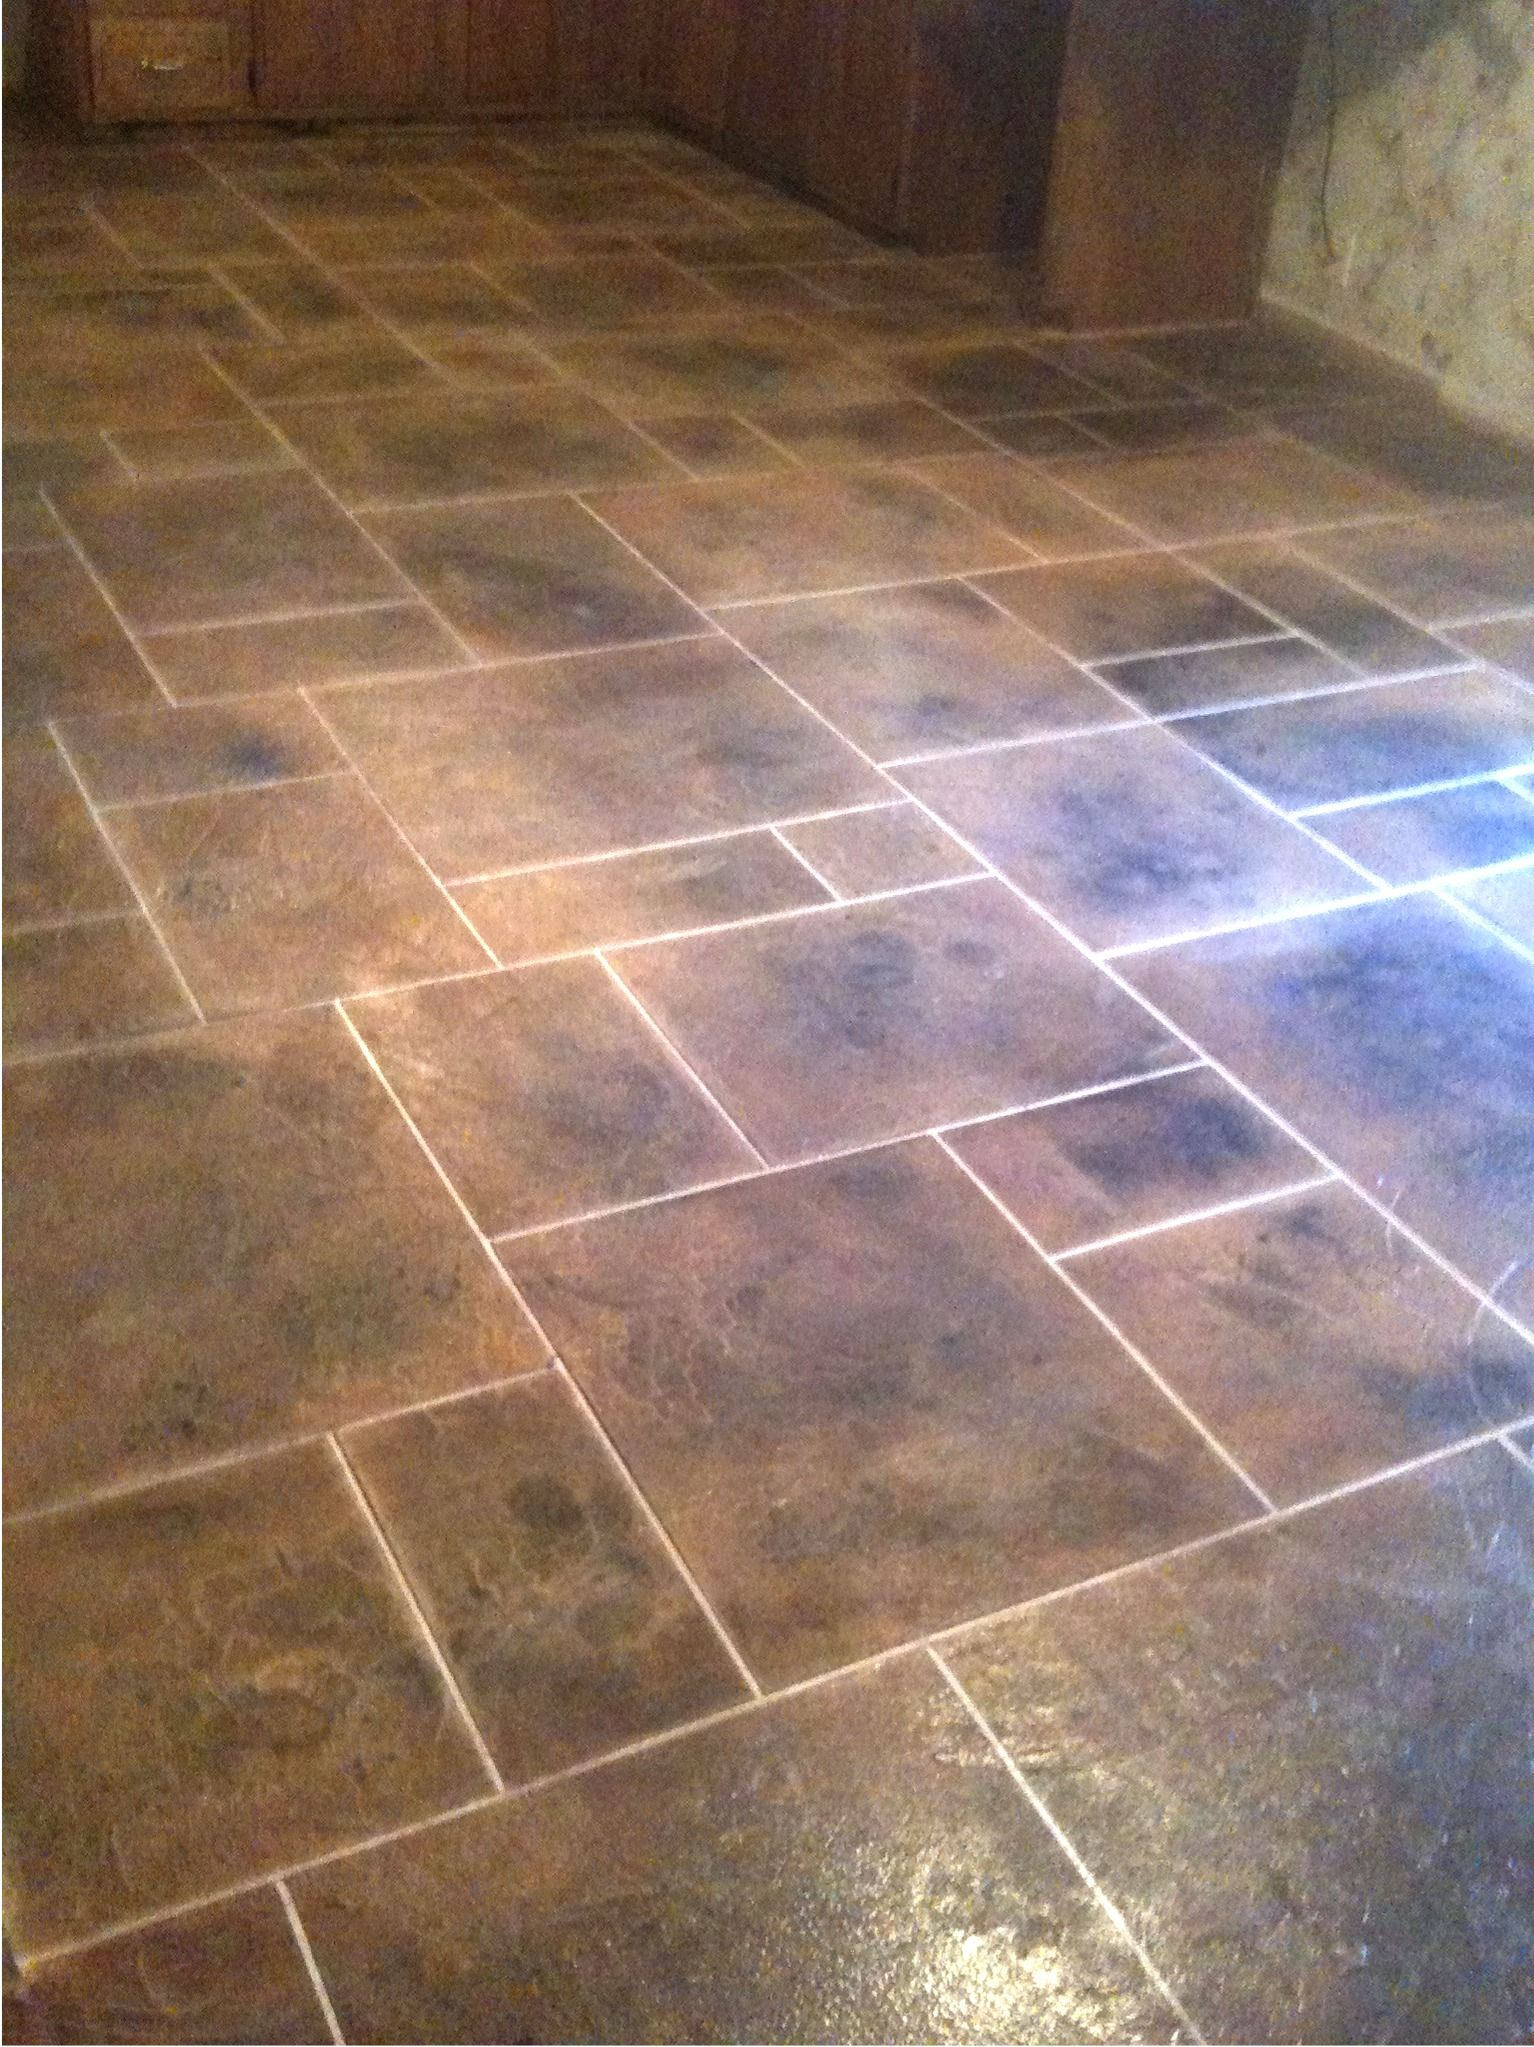 Sandstone Kitchen Floor Tiles Kitchen Floor Tile Patterns Concrete Overlay Random Pattern